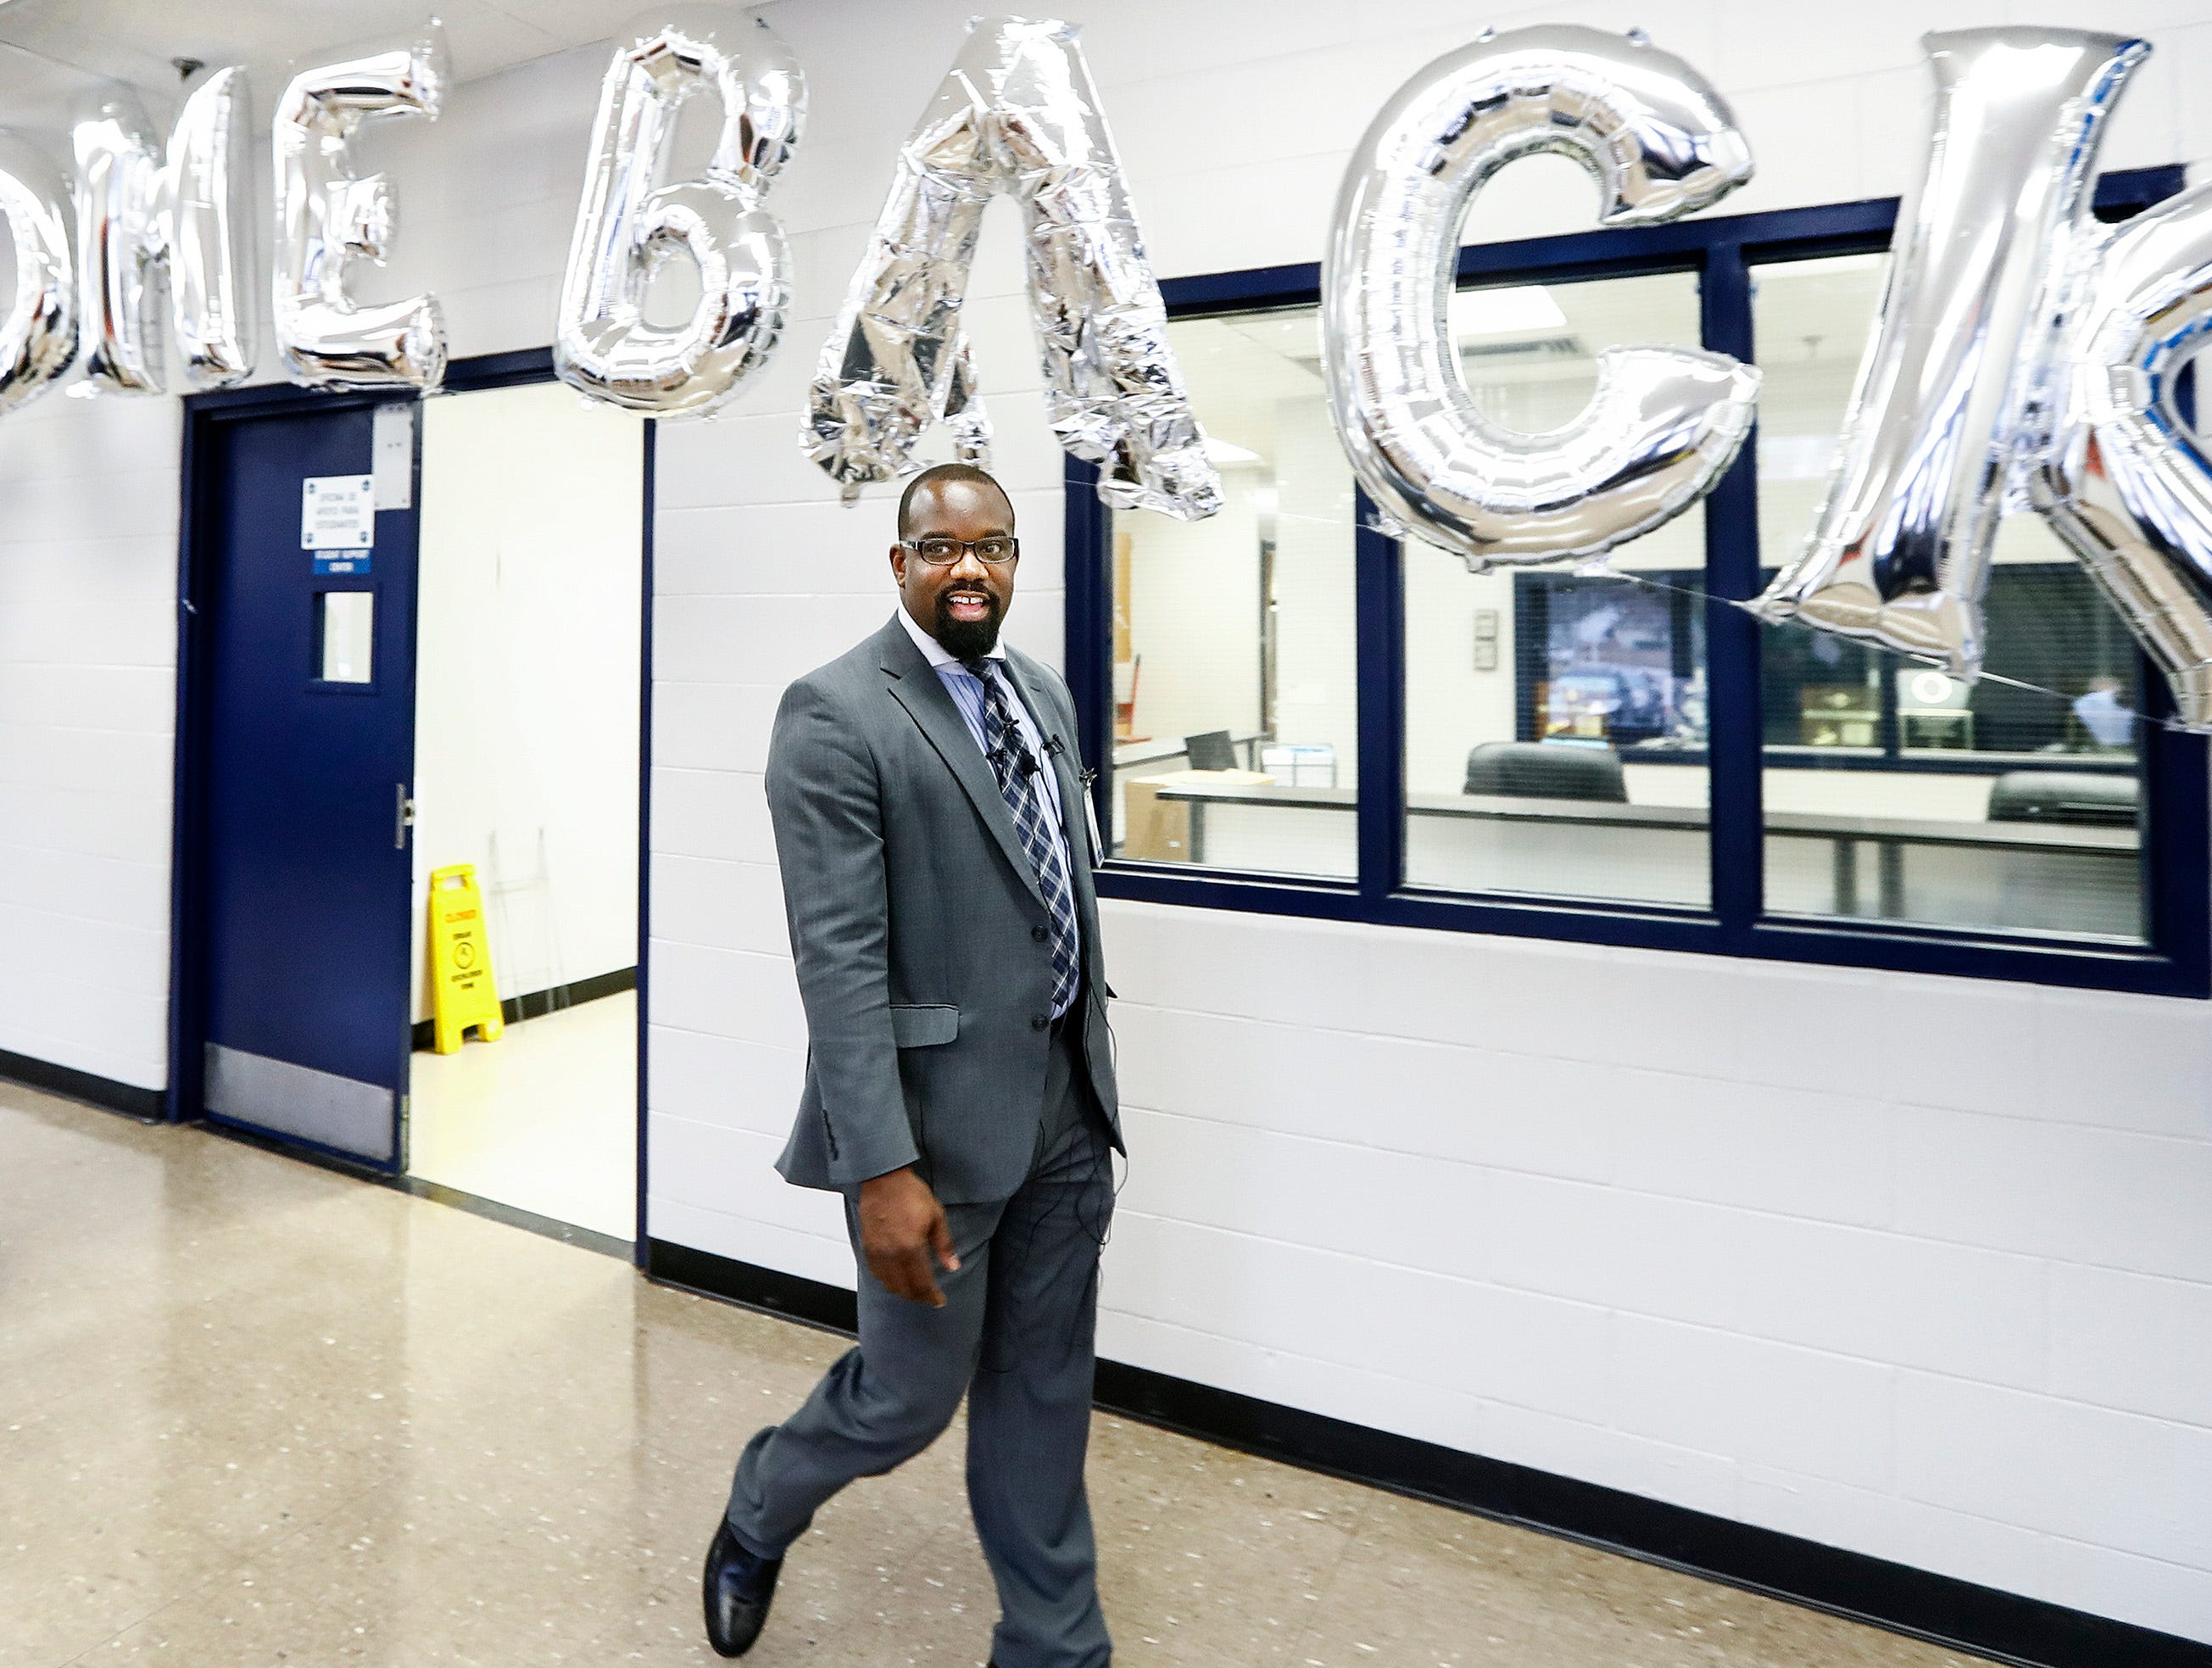 Kirby High School Principal Sheevon Hunter leads a media tour of the updated school that will be reopening on Monday following months of rat abatement.